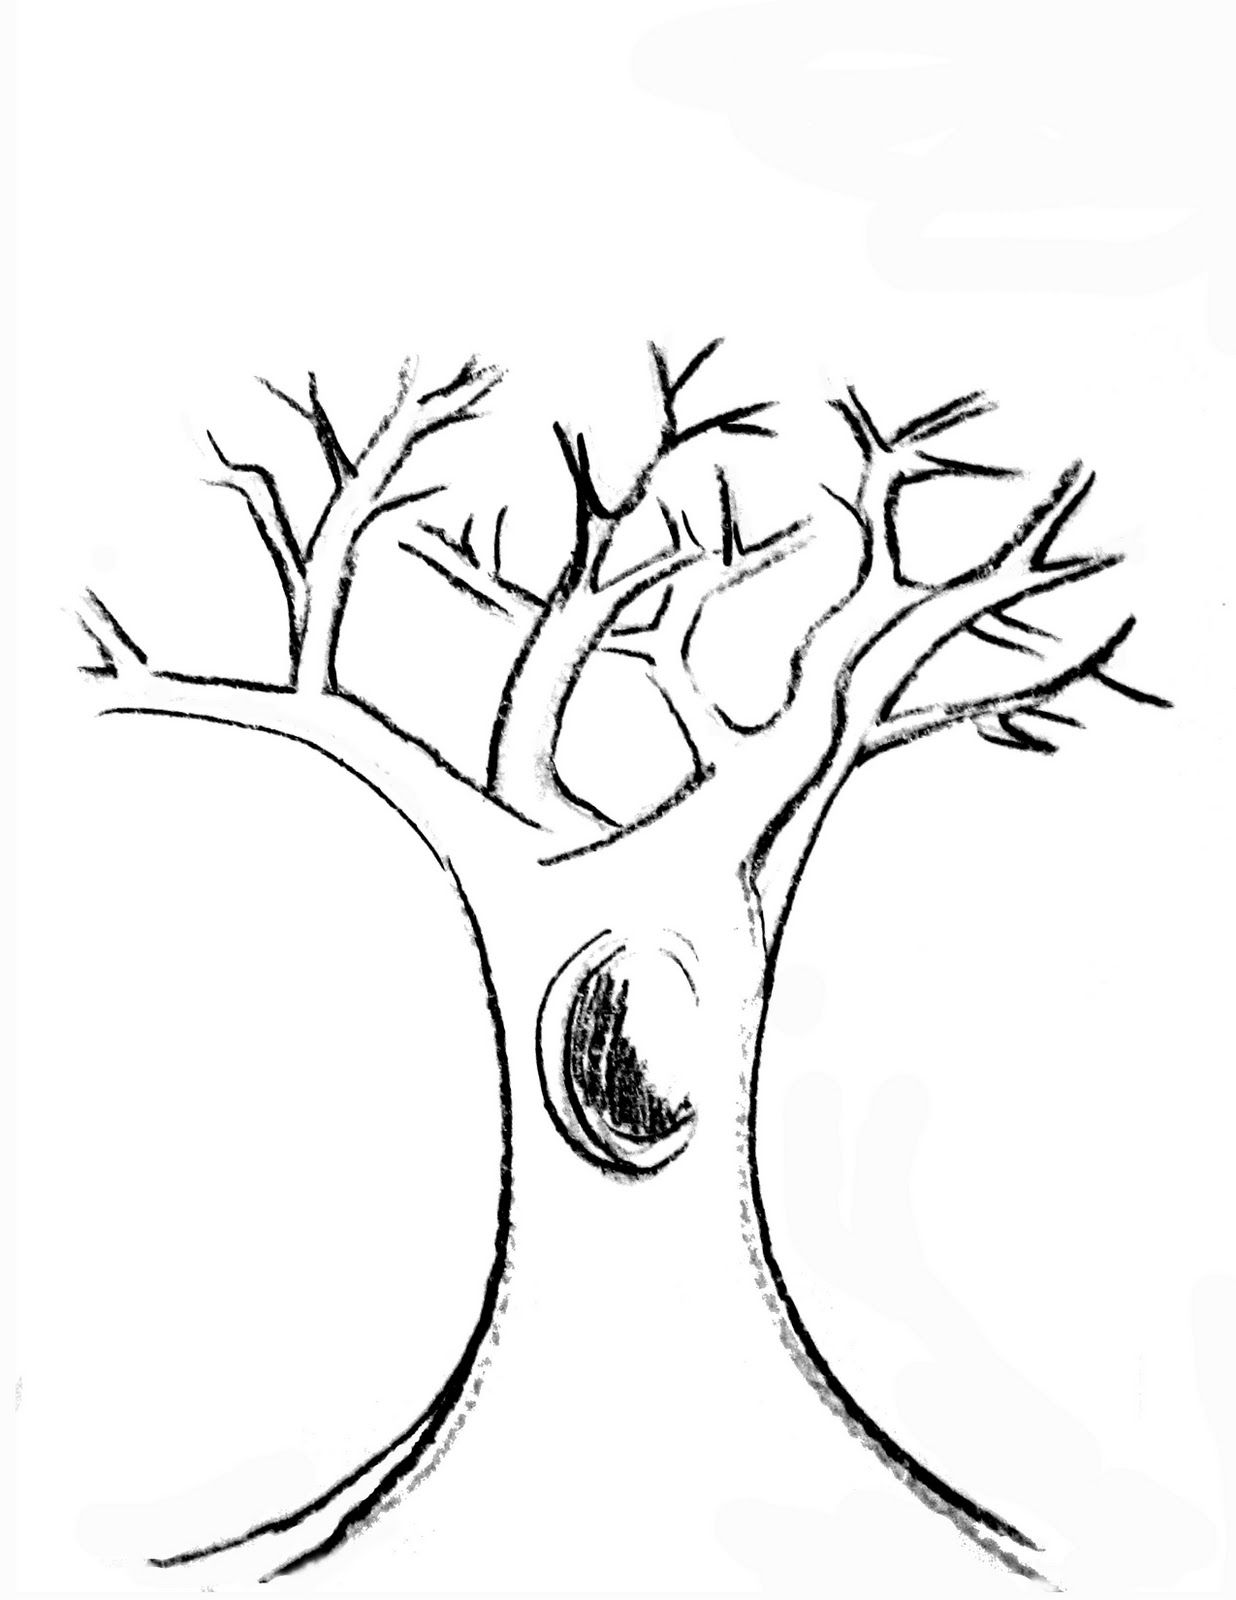 It's just an image of Unusual Printable Tree Branch Template